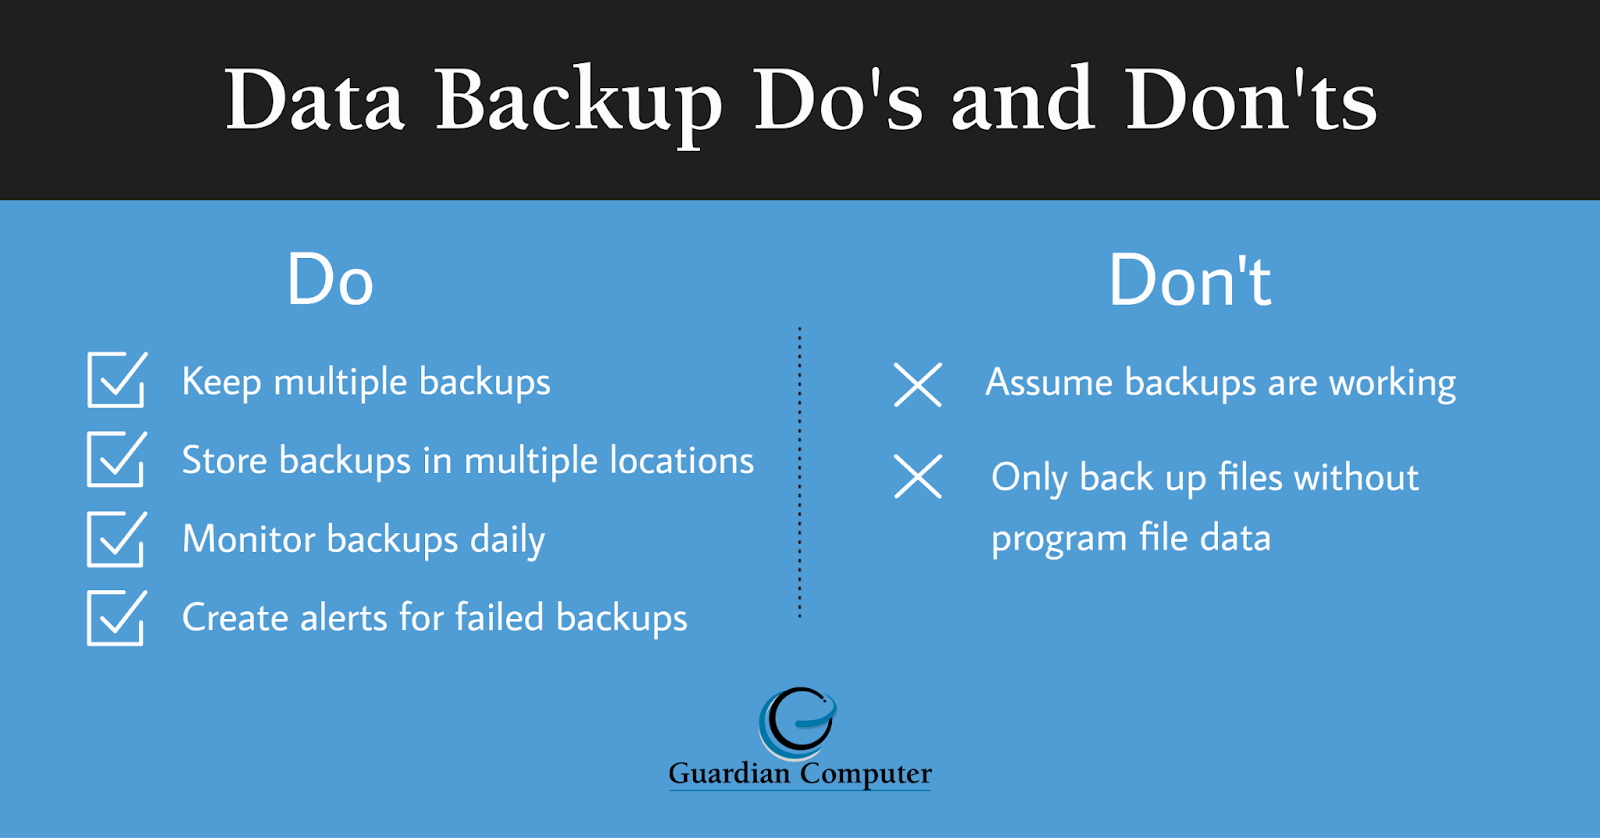 Keep reading or check out this infographic with do's and don'ts for data backups.